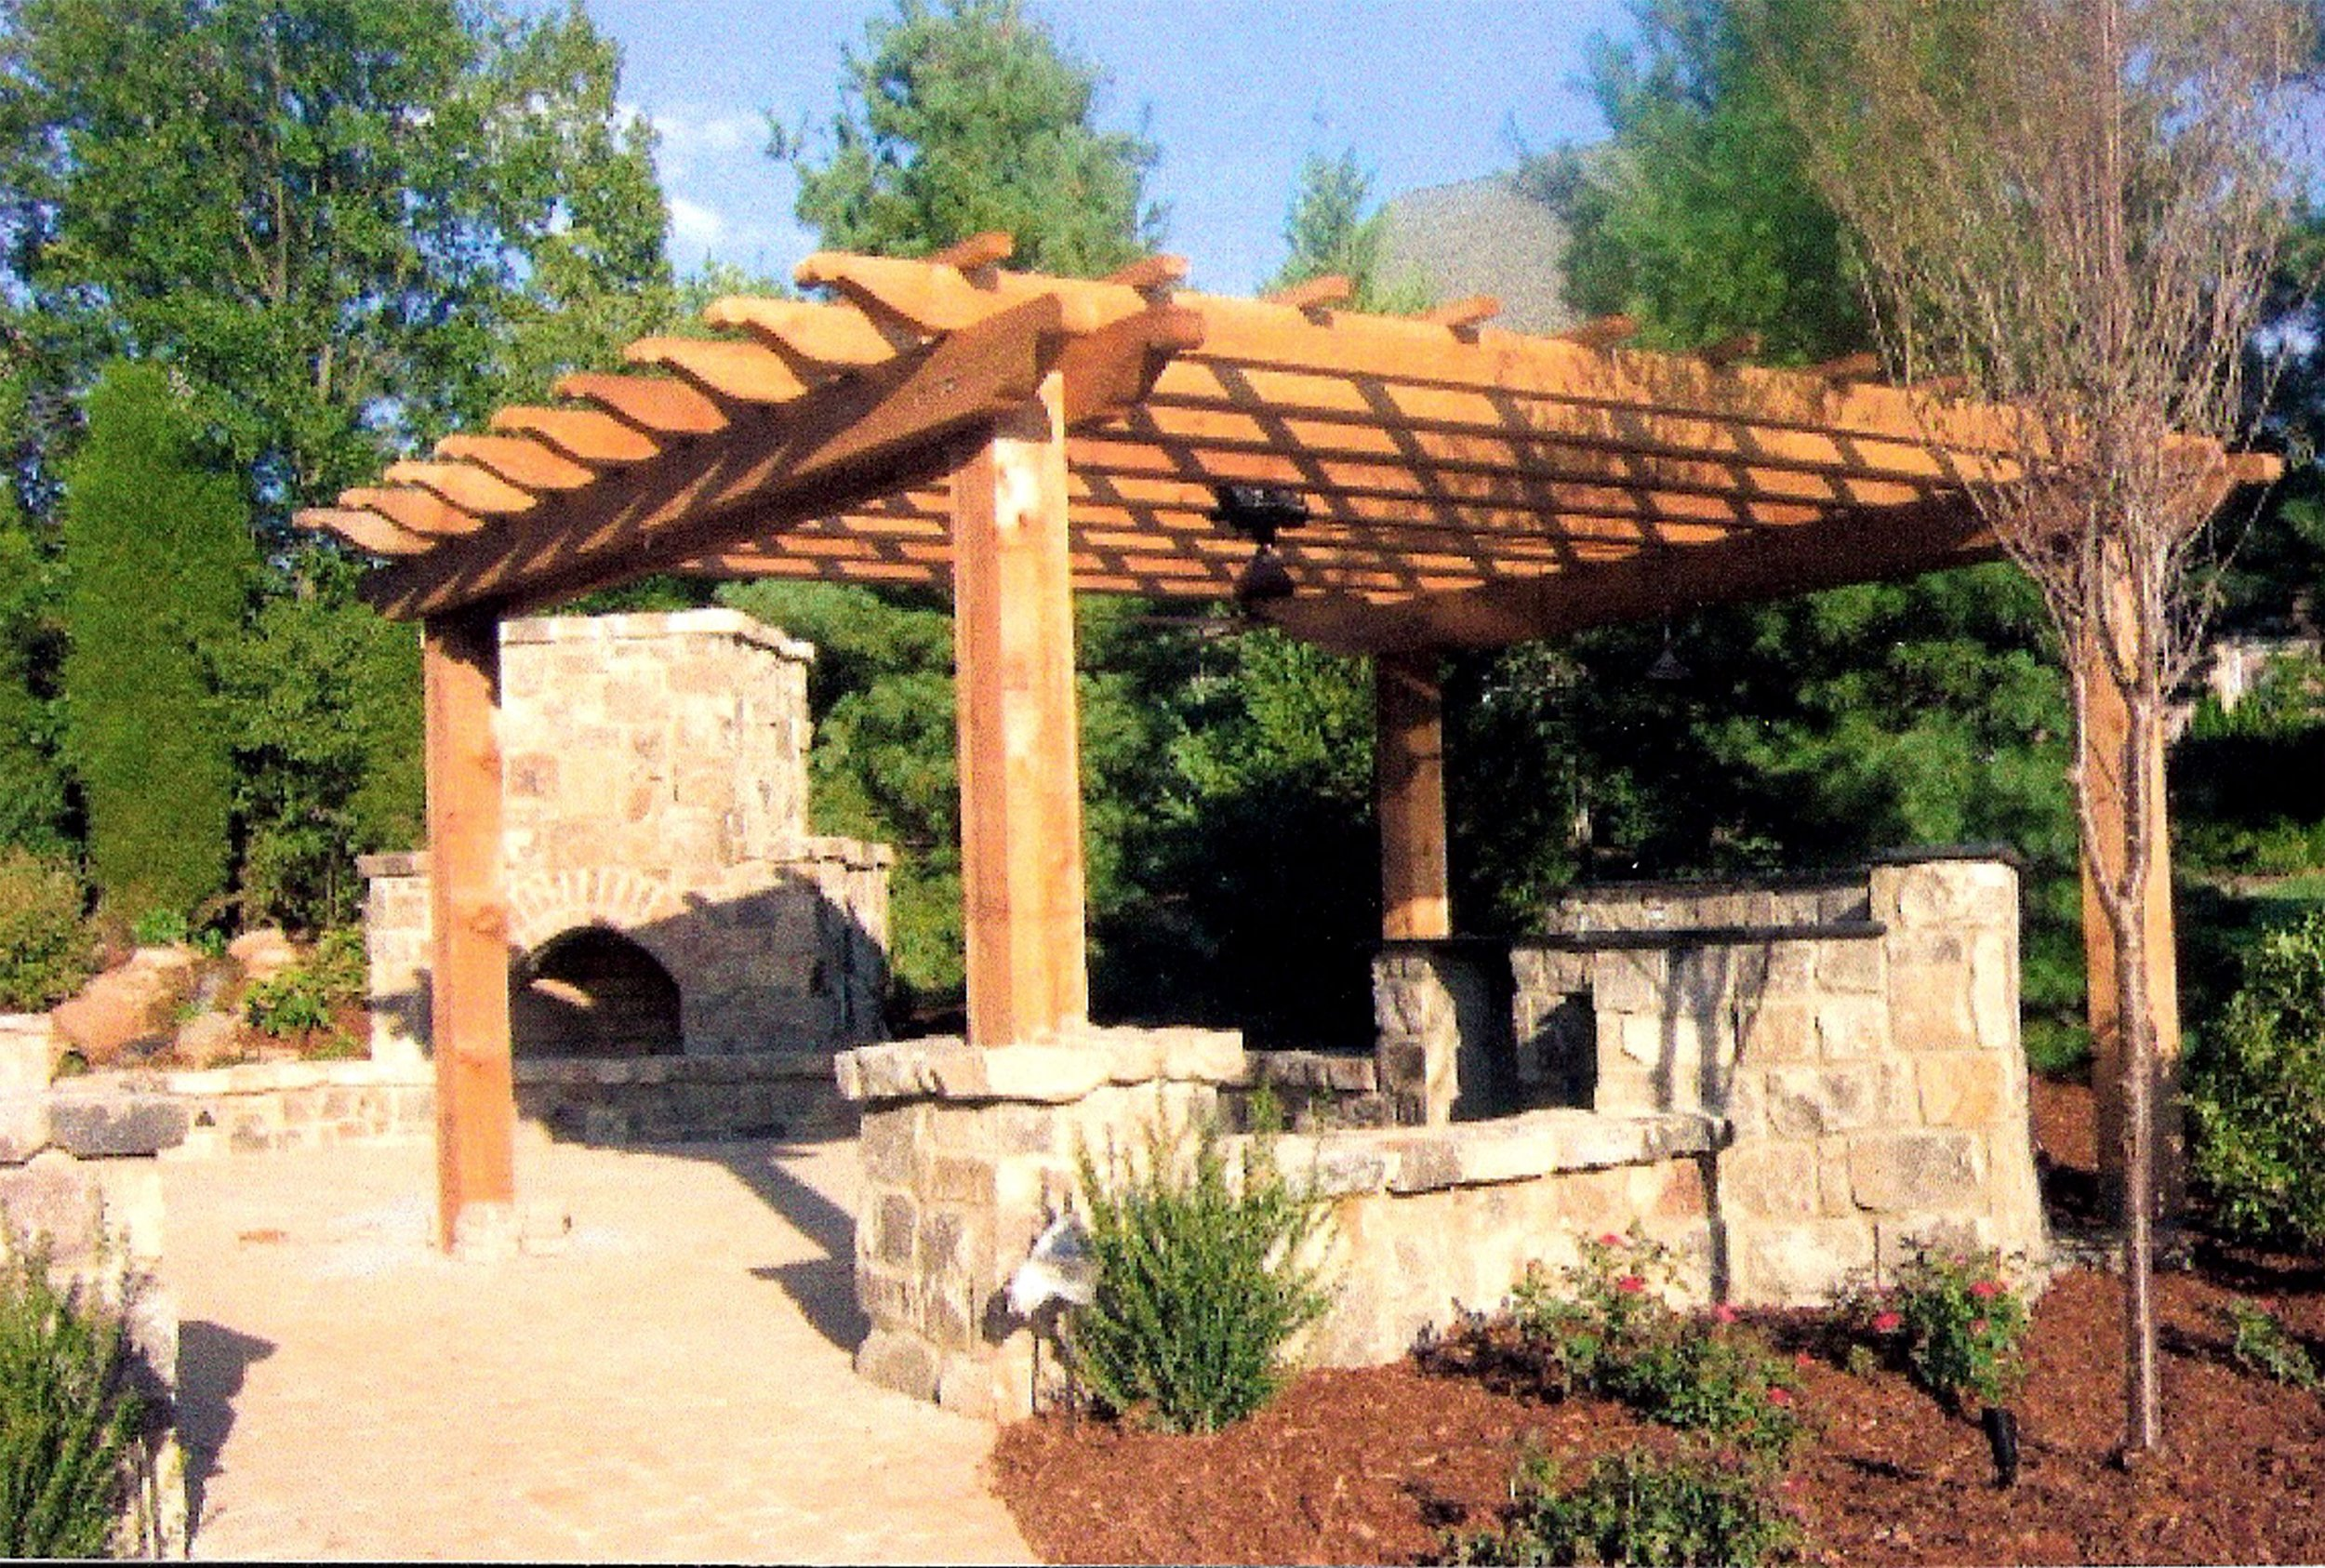 PERGOLAS AND STRUCTURES — Peola Outdoor Living & Landscape